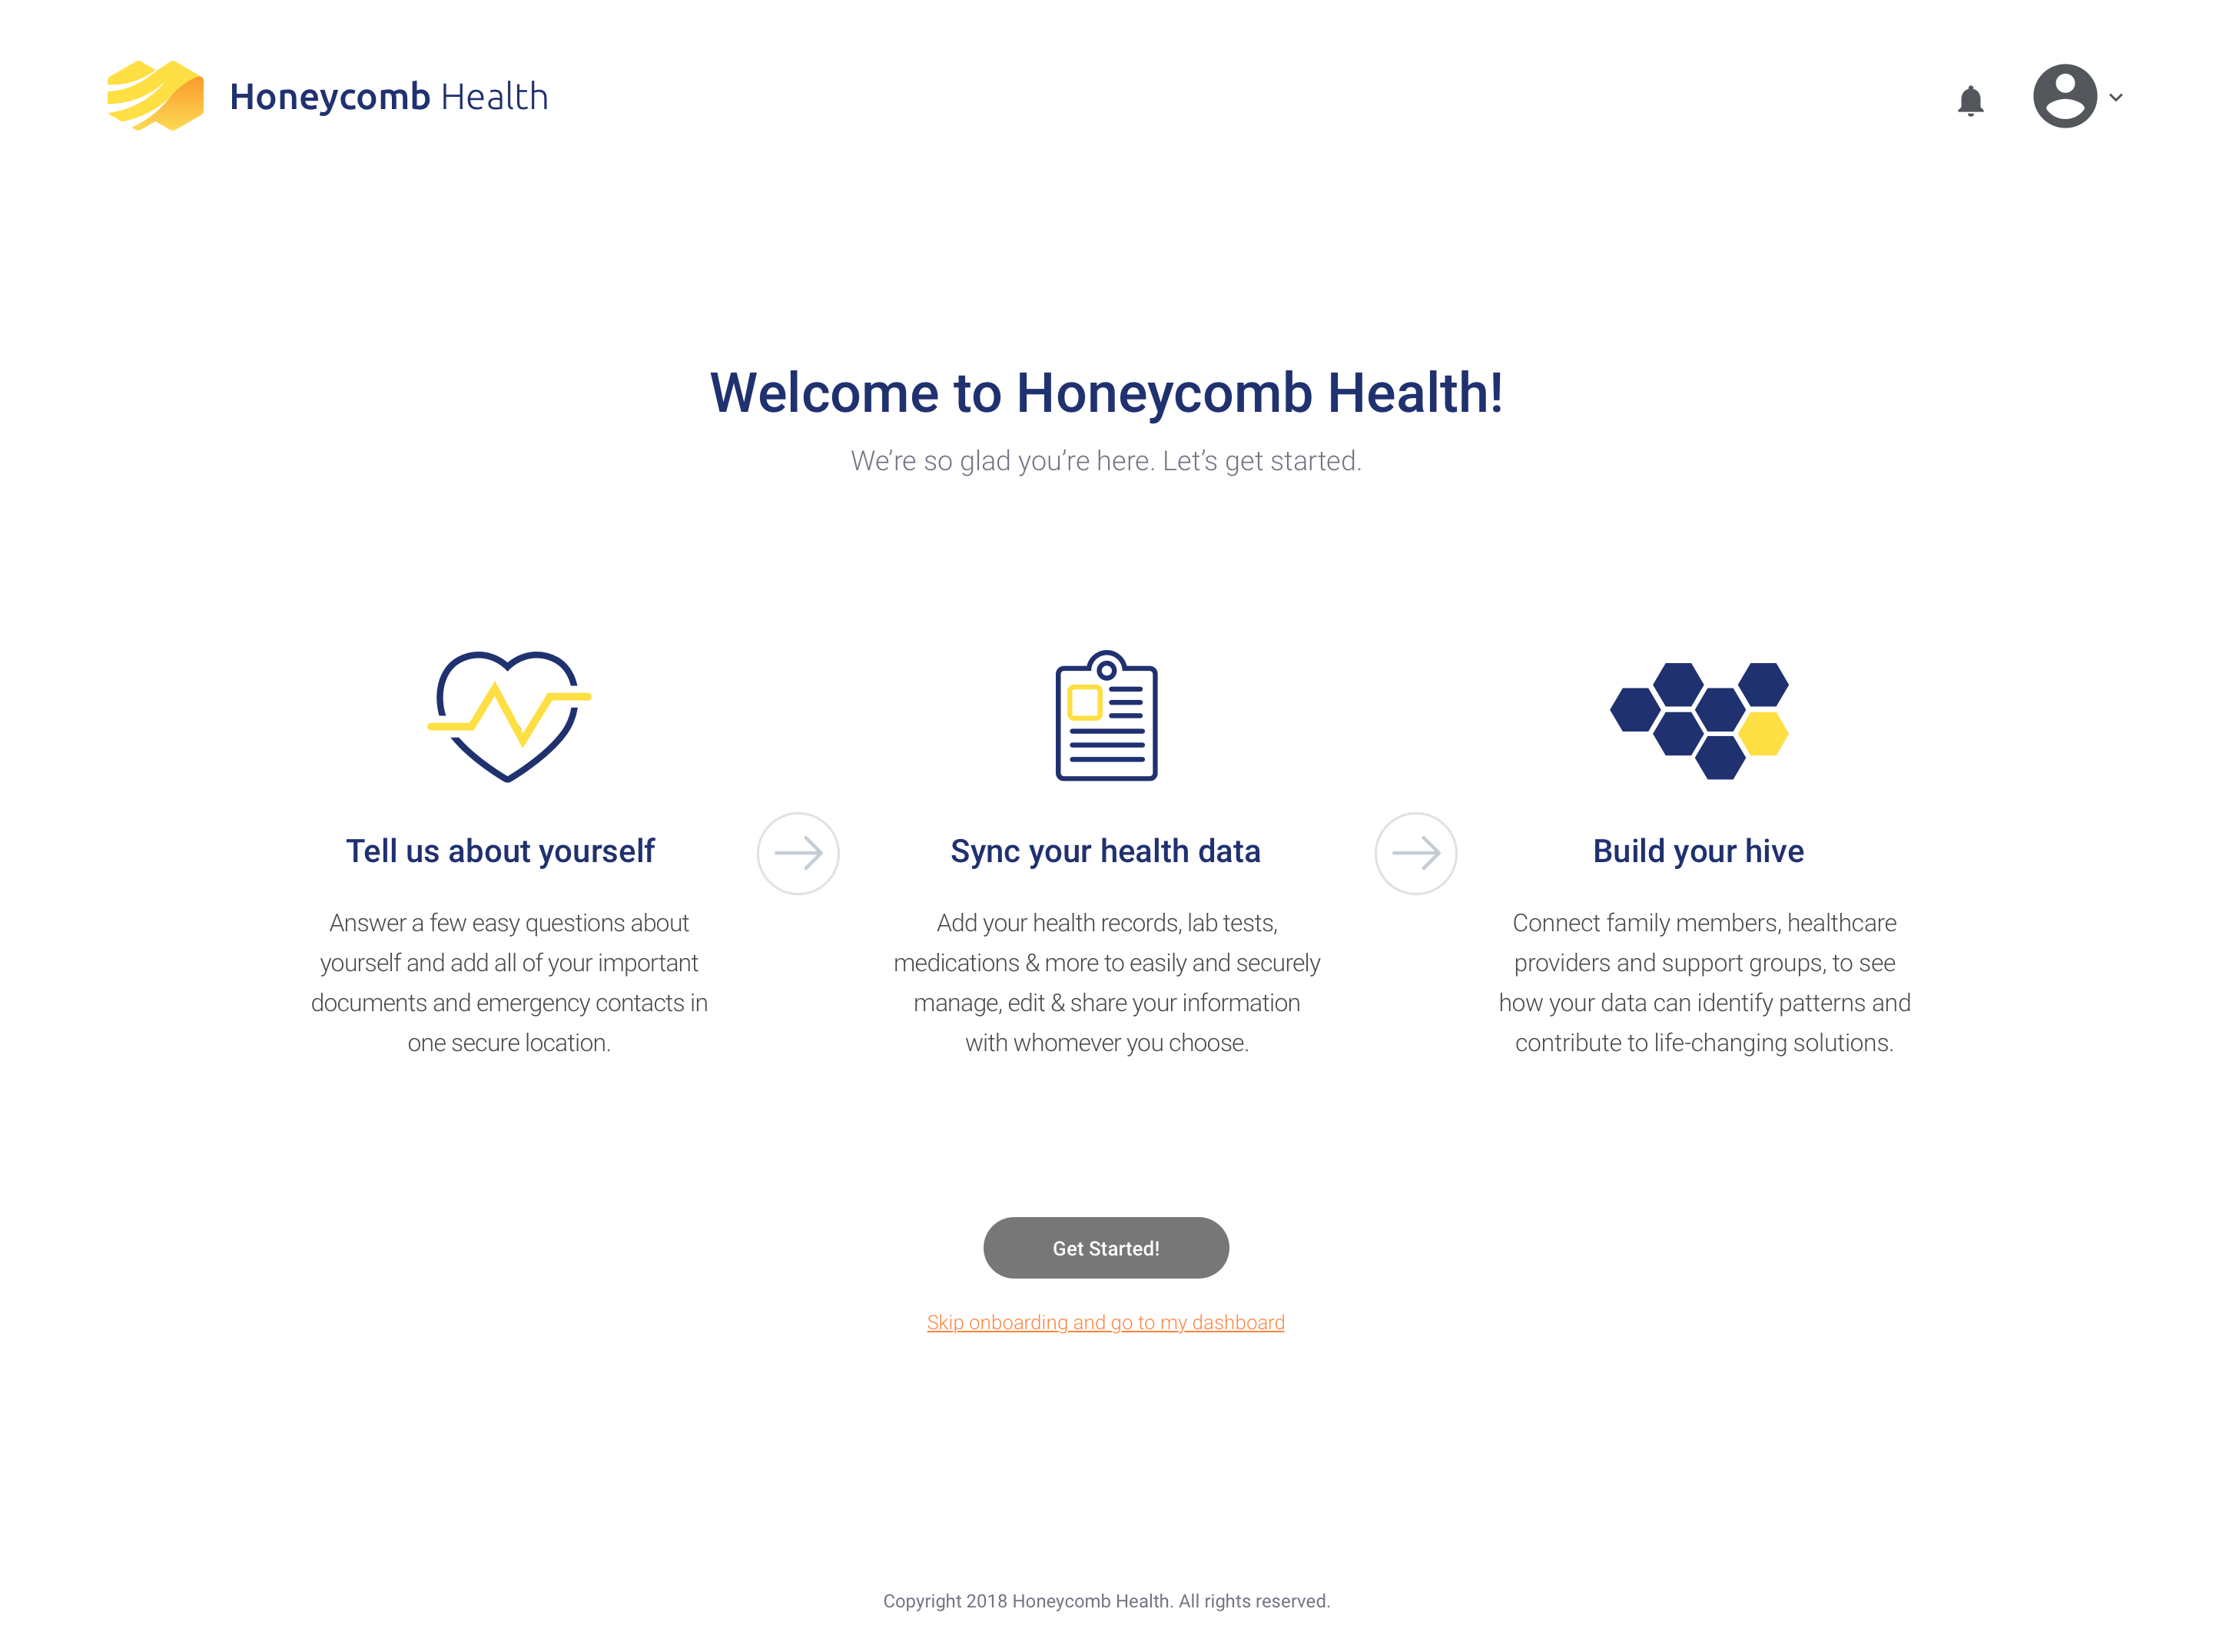 Honeycomb Health